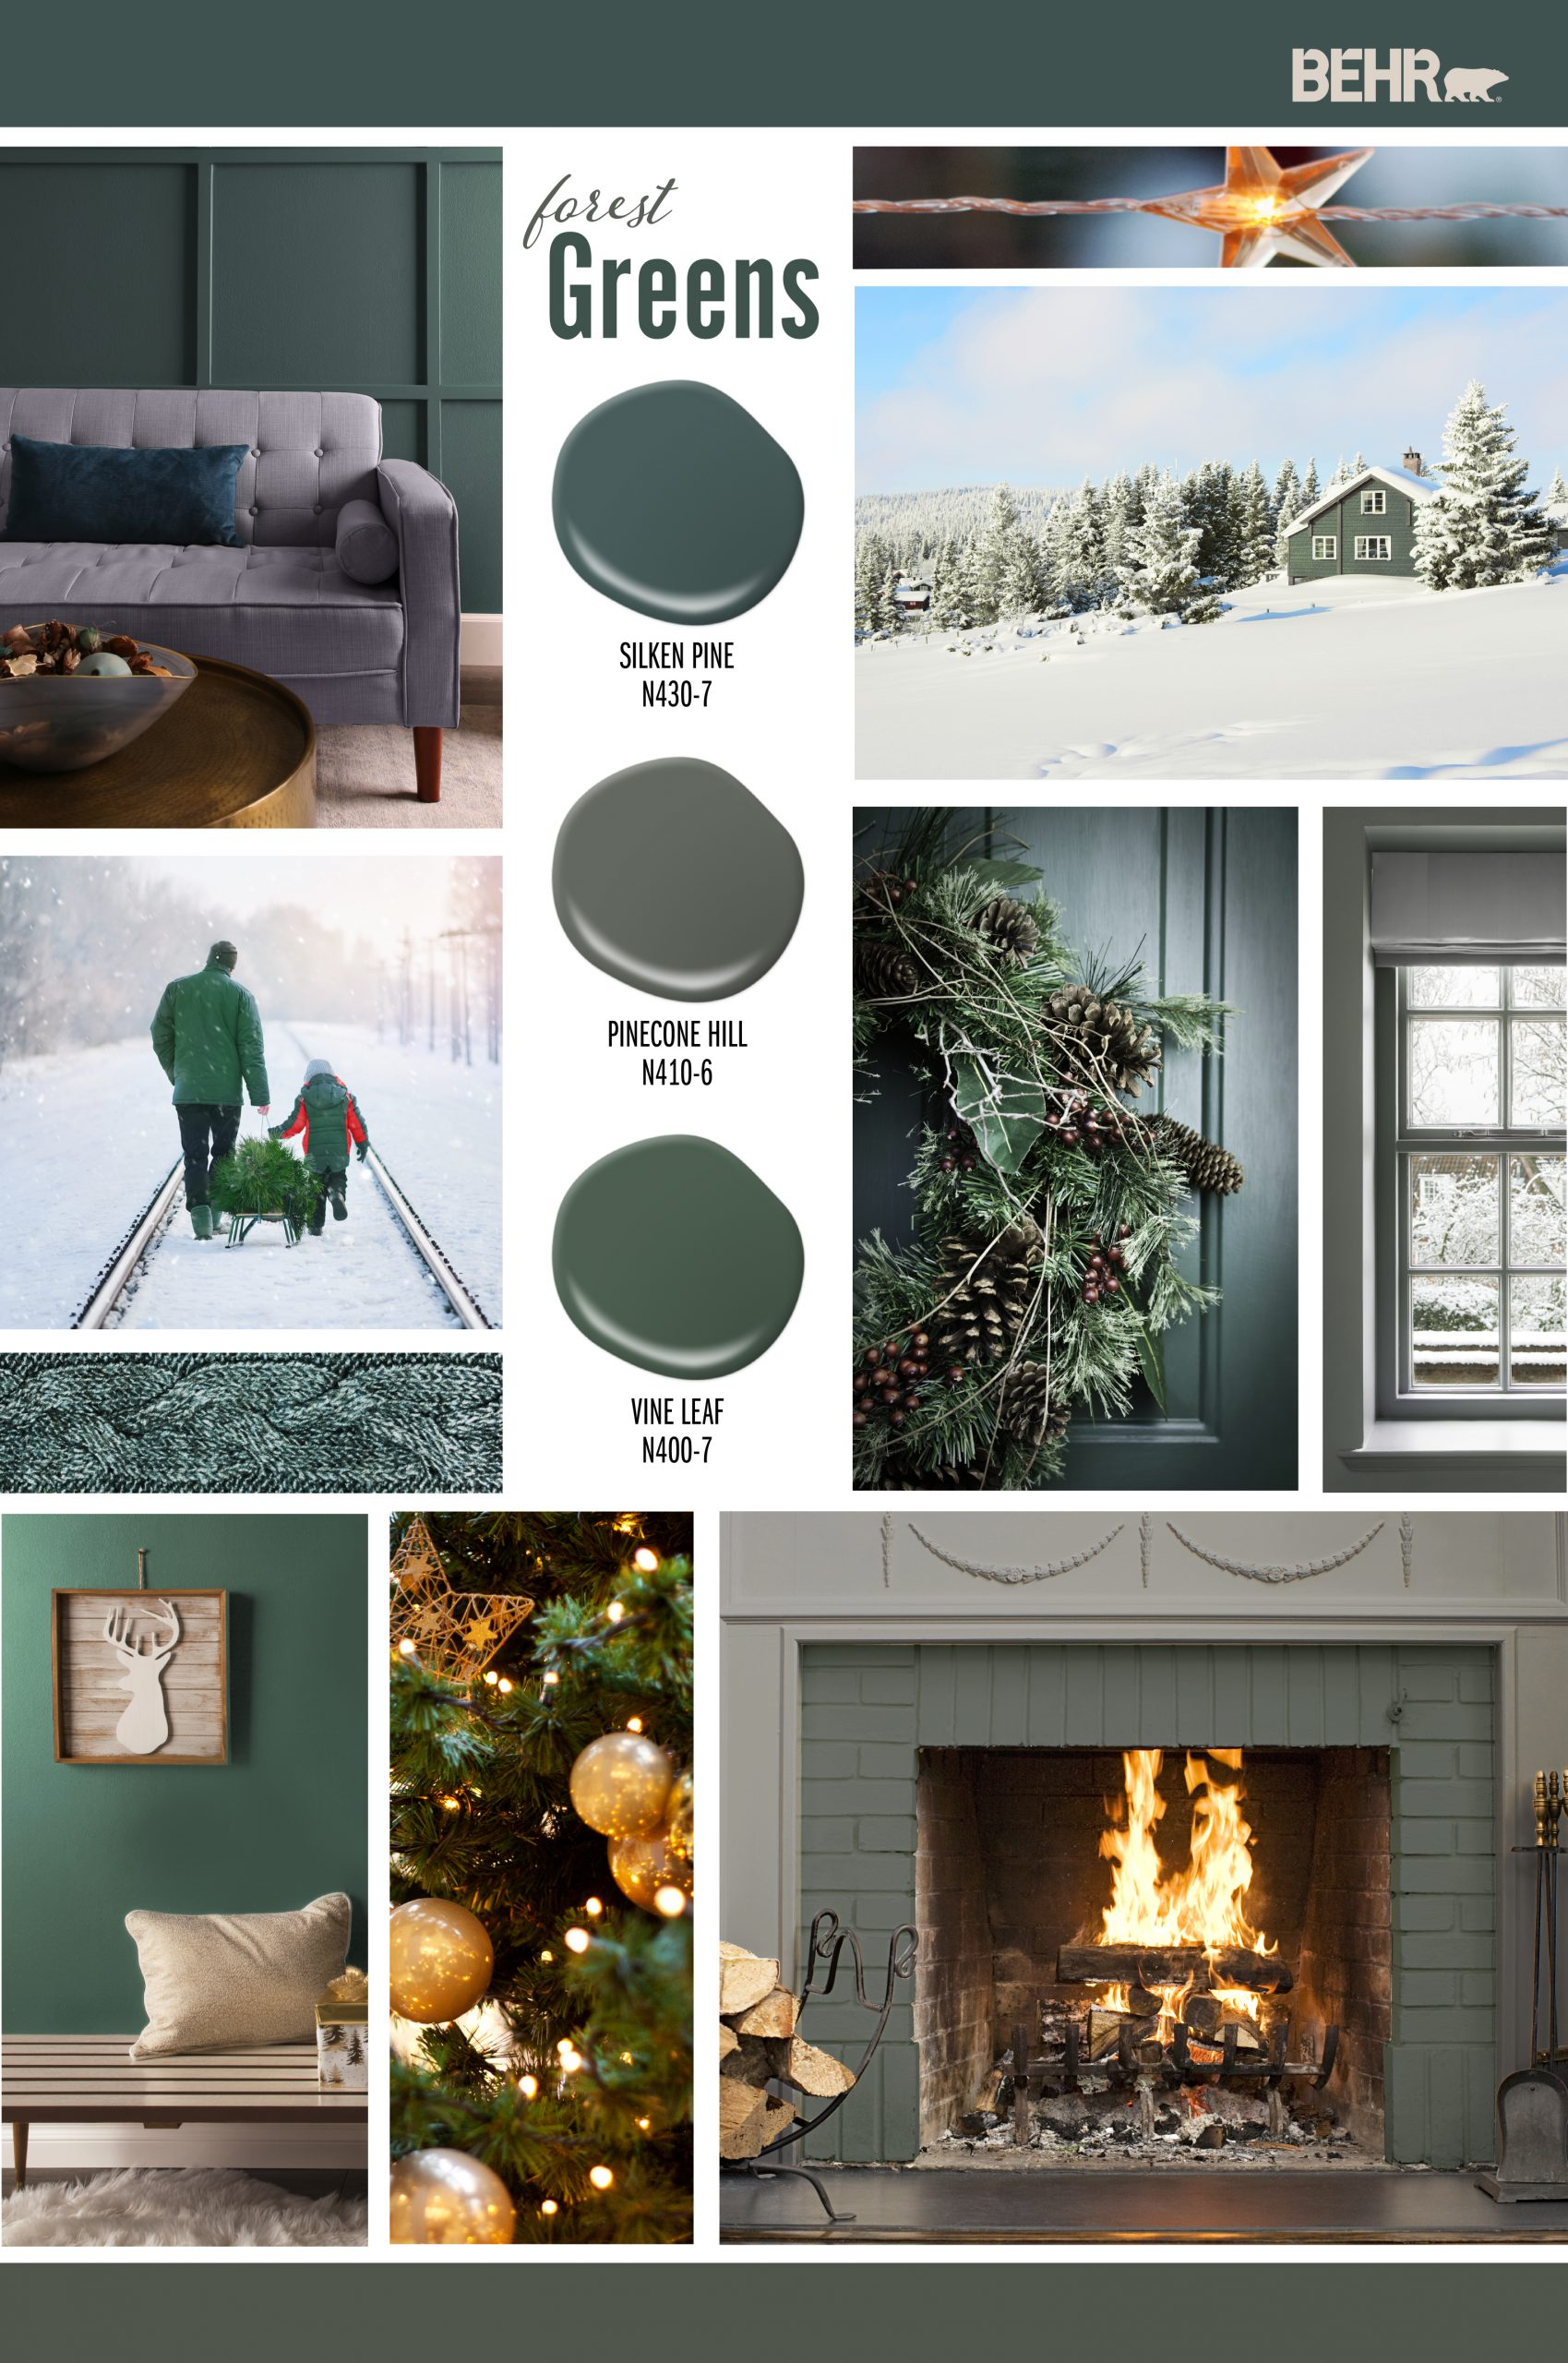 Inspiration Board featuring three green paint drops: Silken Pine, Pinecone Hill, Vine Leaf Images shown are the following: -A living room with a gray couch and blue pillow. Wall is painted in Silken Pine. -An exterior house sitting up on a snowy hill. The home is painted in Vine Leaf. -A dad and his son walking along snowy railroad train tracks dragging a Christmas tree. -A close crop of an exterior door with a wreath hanging from it. The door is painted in Silken Pine. -A close crop of a window. The wall around the window is painted in Pinecone Hill. Outside the window are snow covered trees. -A hallway with a bench. The wall is painted Vine Leaf. -A lit fireplace with the brick part painted in Vine Leaf, the outer part is painted in Pinecone Hill.